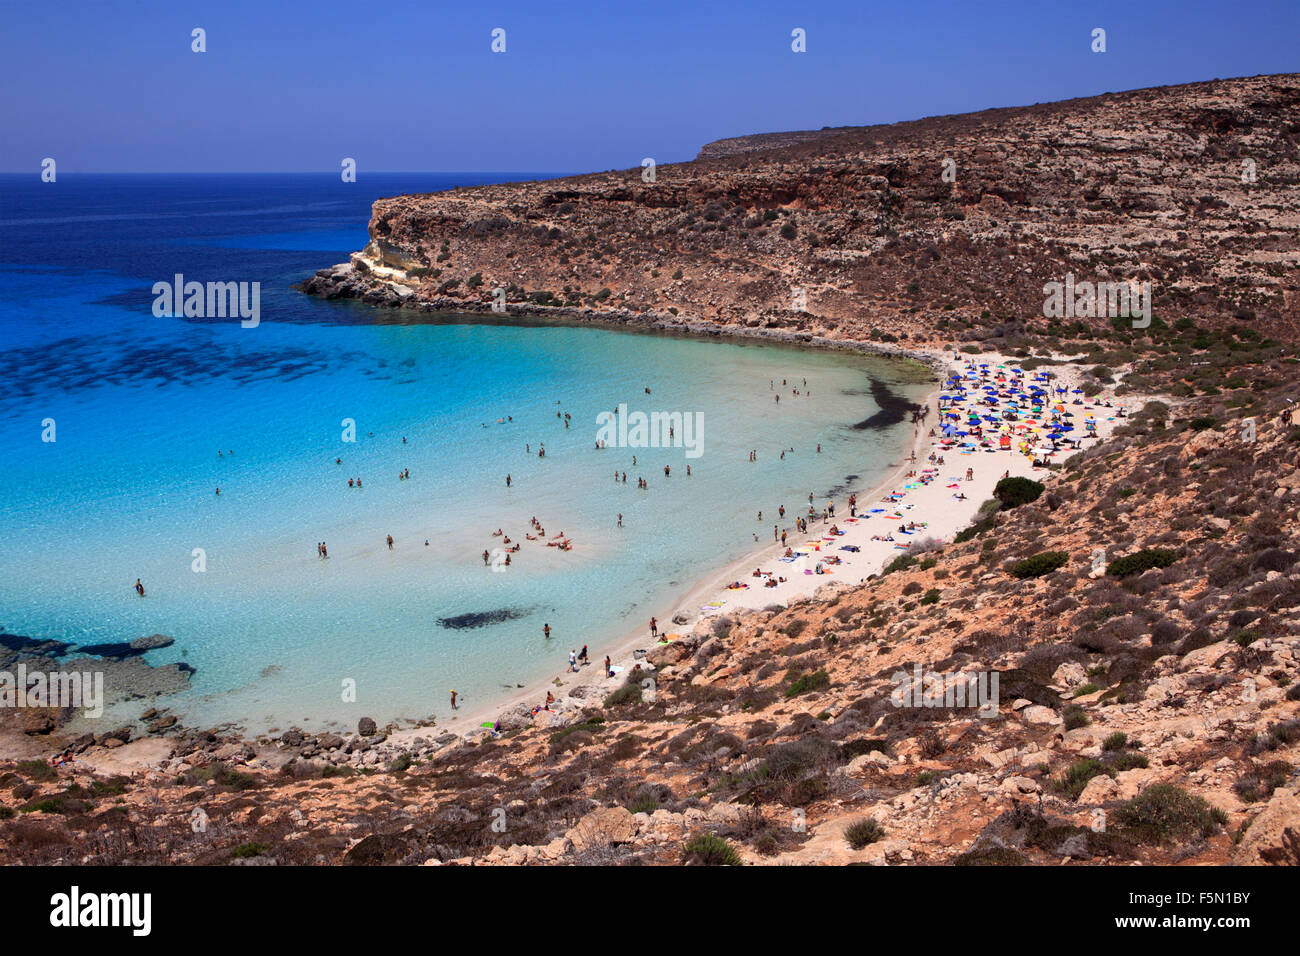 Beach of Rabbits in Lampedusa, Sicily, Italy - Stock Image